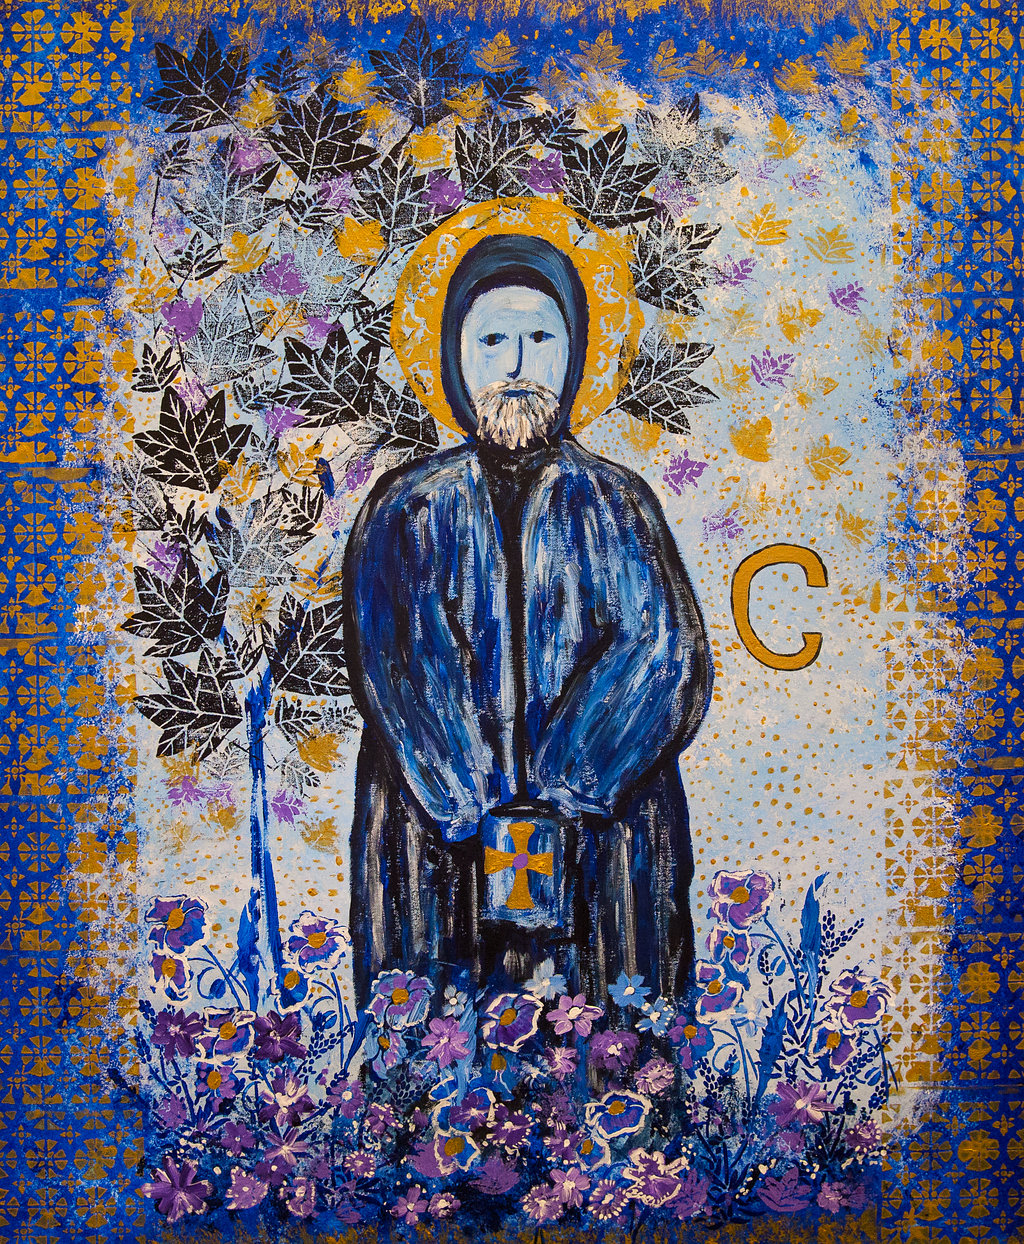 Group Canvas of St Cuthbert by Year 5 - St Cuthbert with St Matthias CE Primary School RBKC